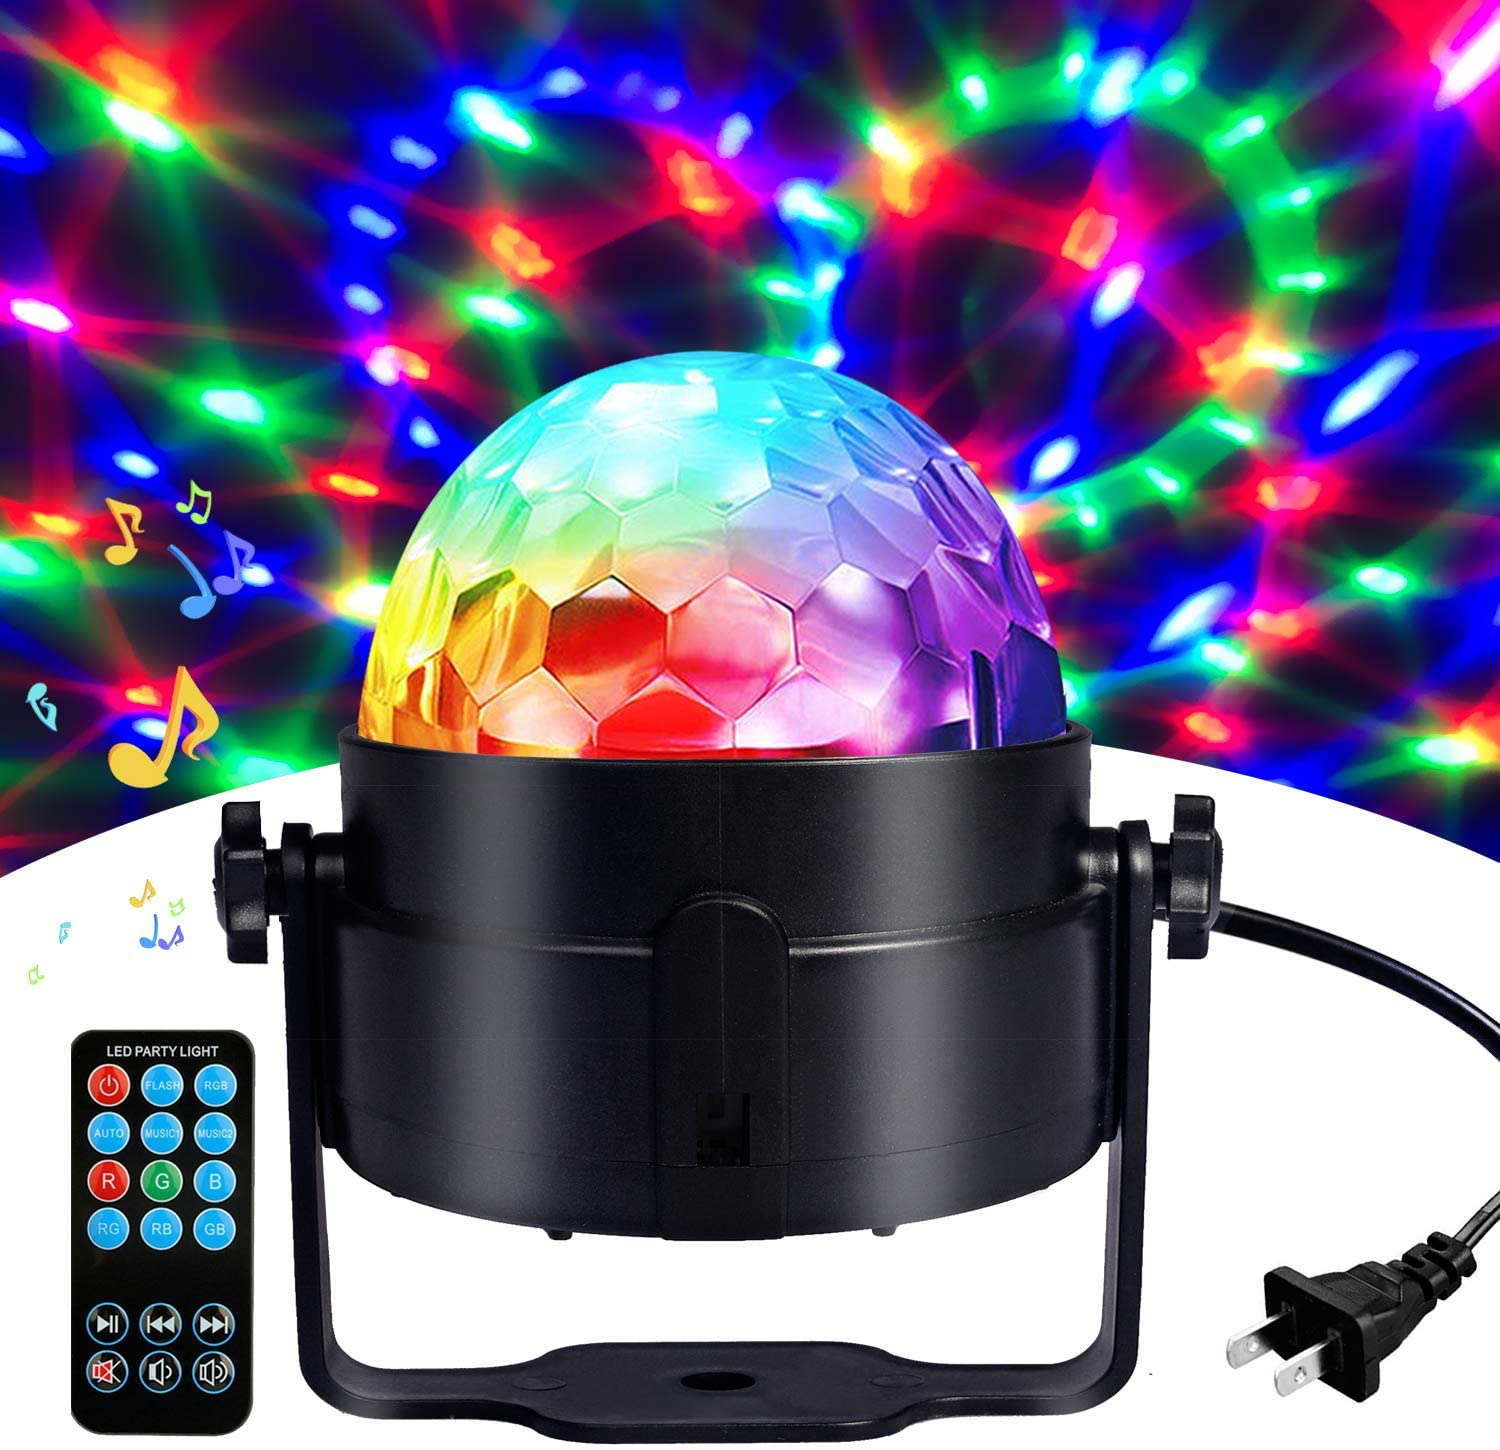 COIDEA Party Lights Sound Activated Storbe Light With Remote Control DJ Strobe Lighting